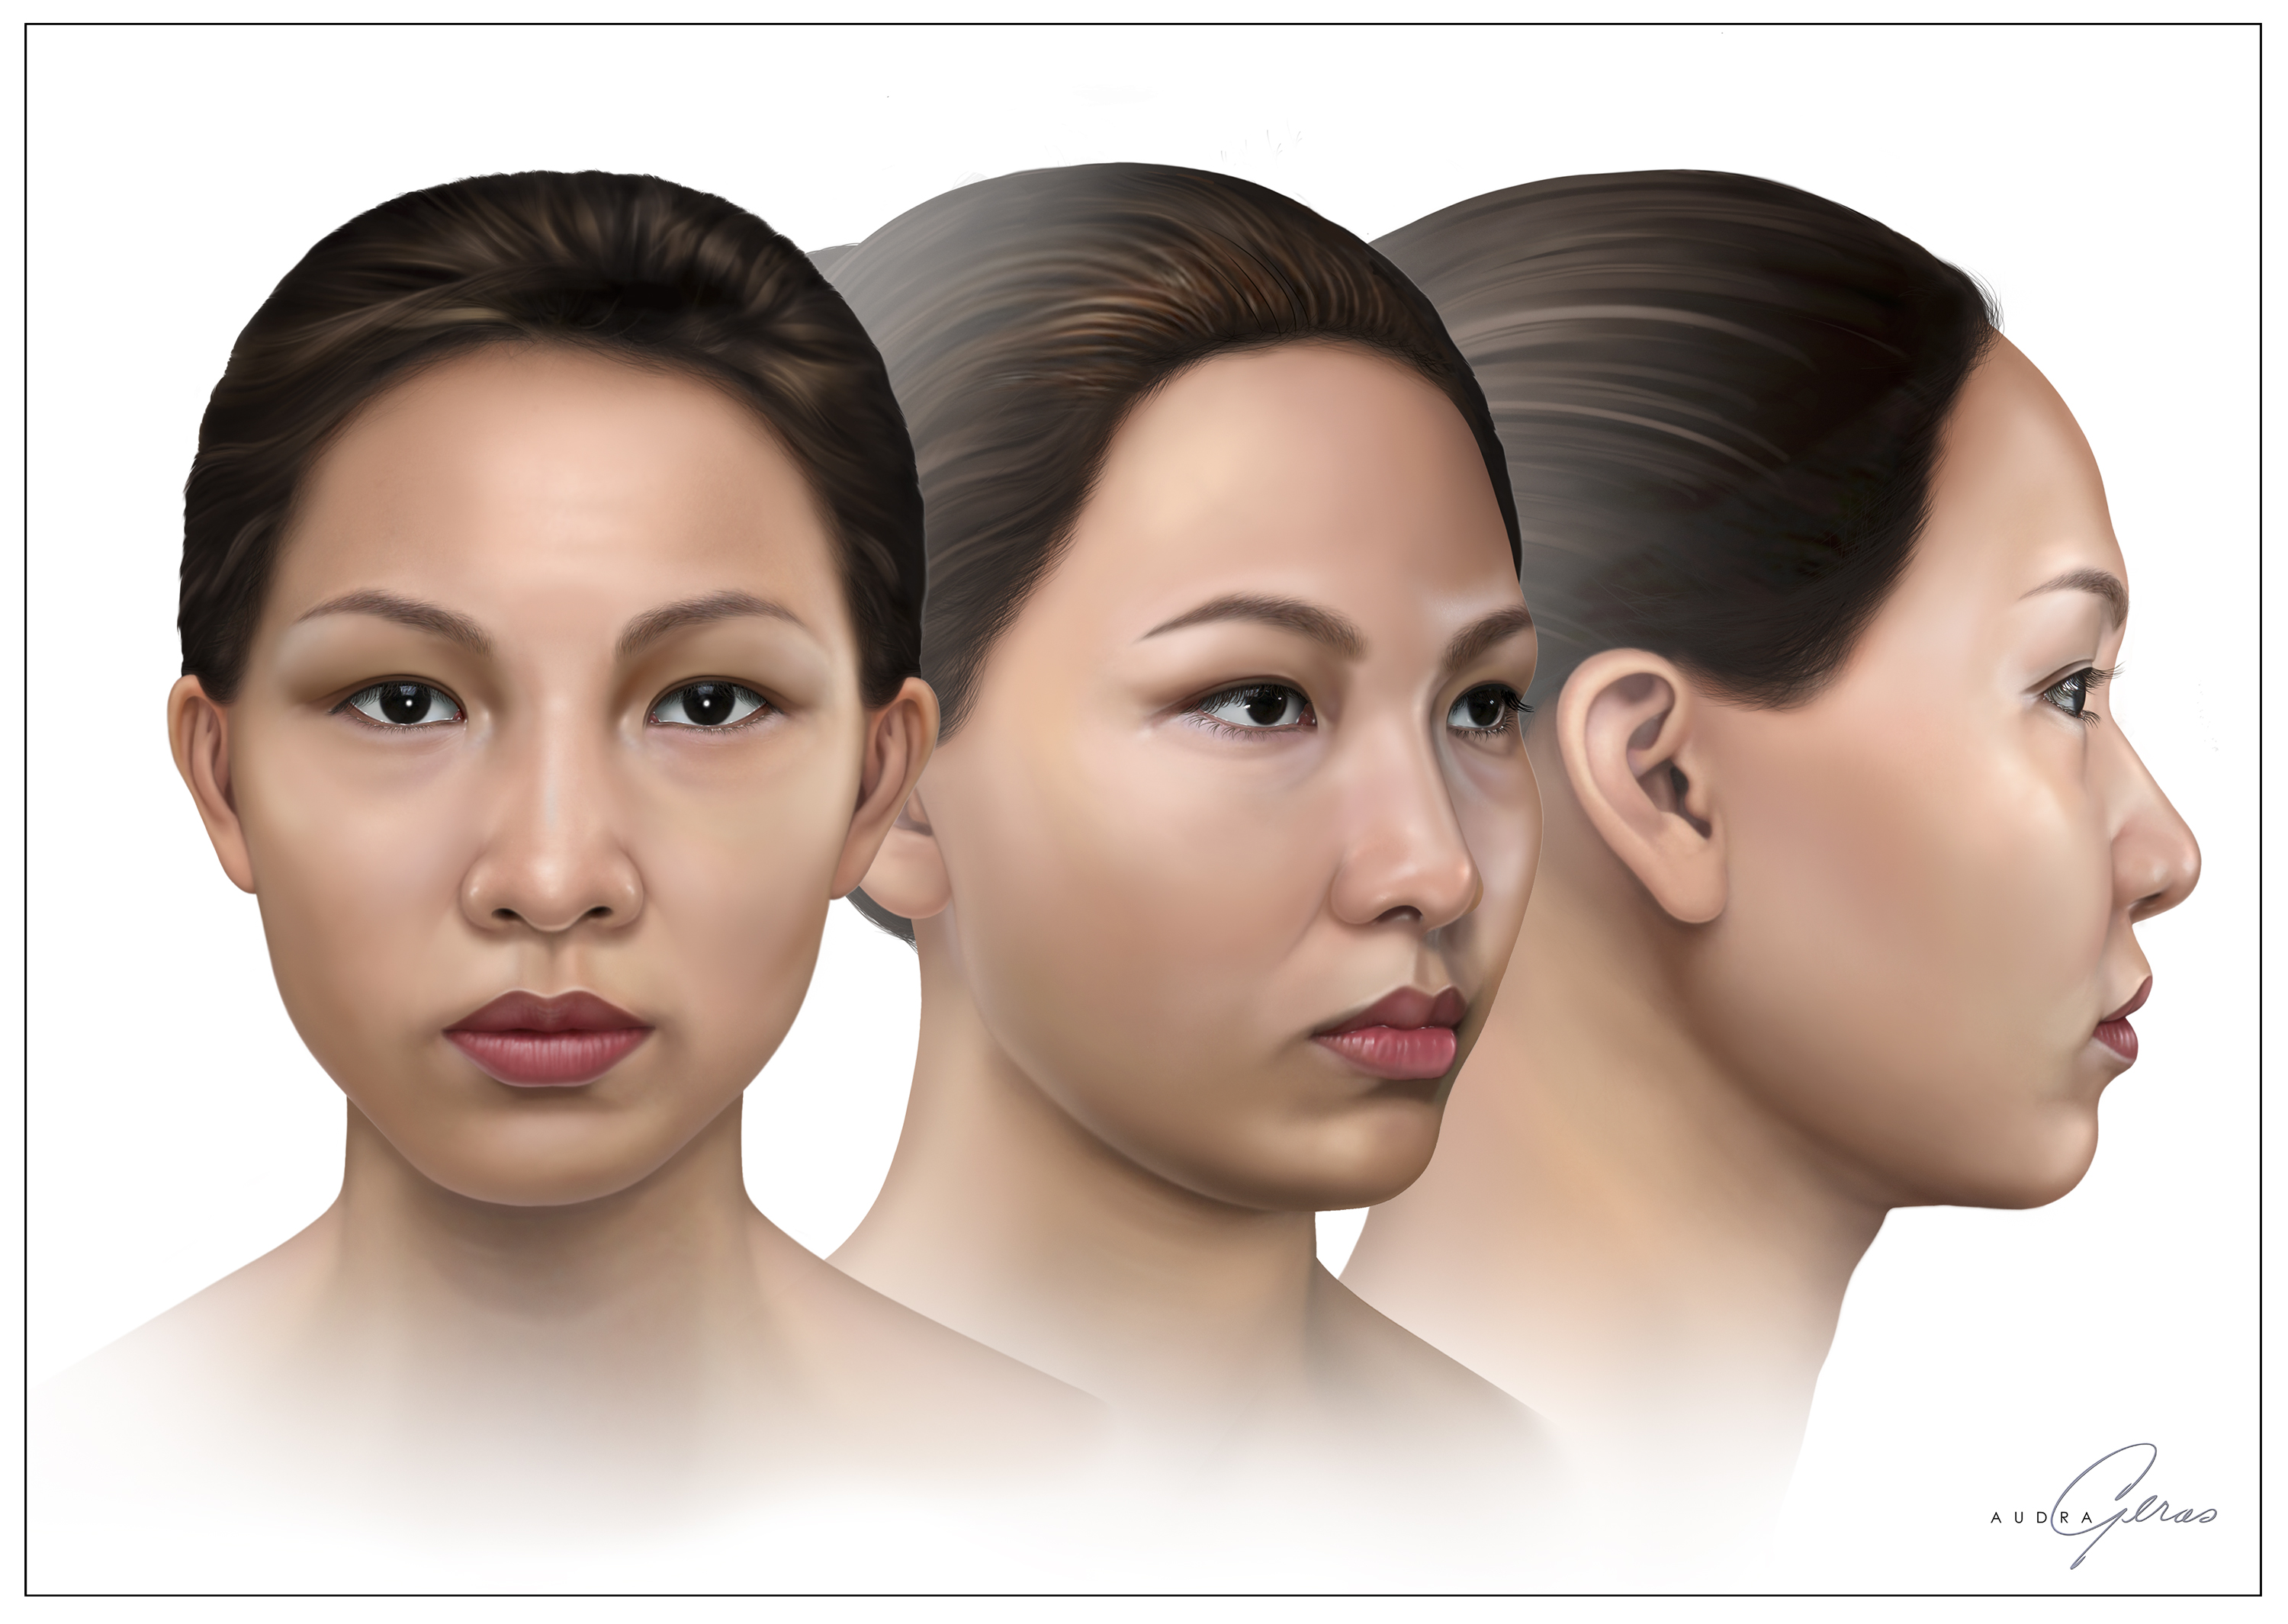 3 Views of Asian Face for Botox - Geras Healthcare Productions